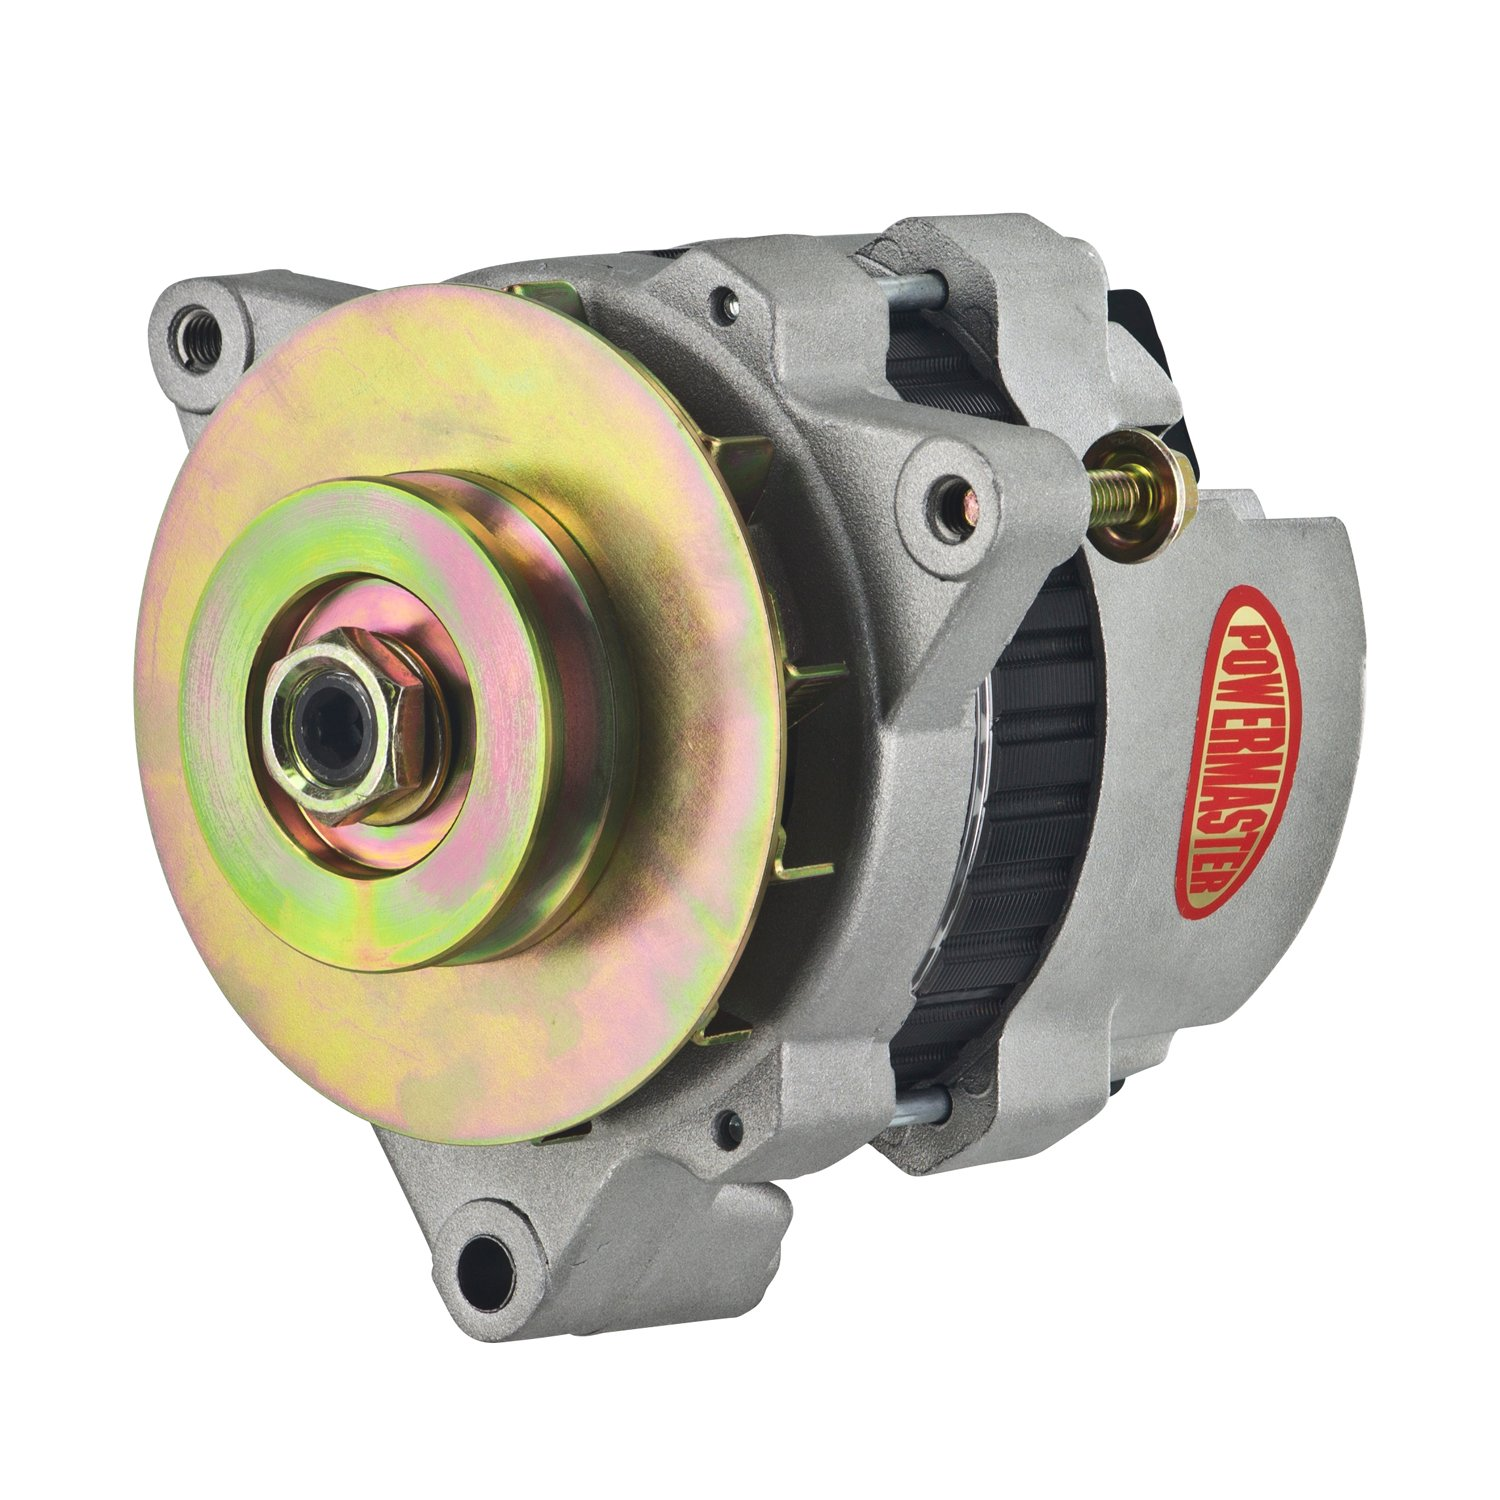 Powermaster 7476 - Powermaster GM CS121 Style 5x5 Compact Race Alternators